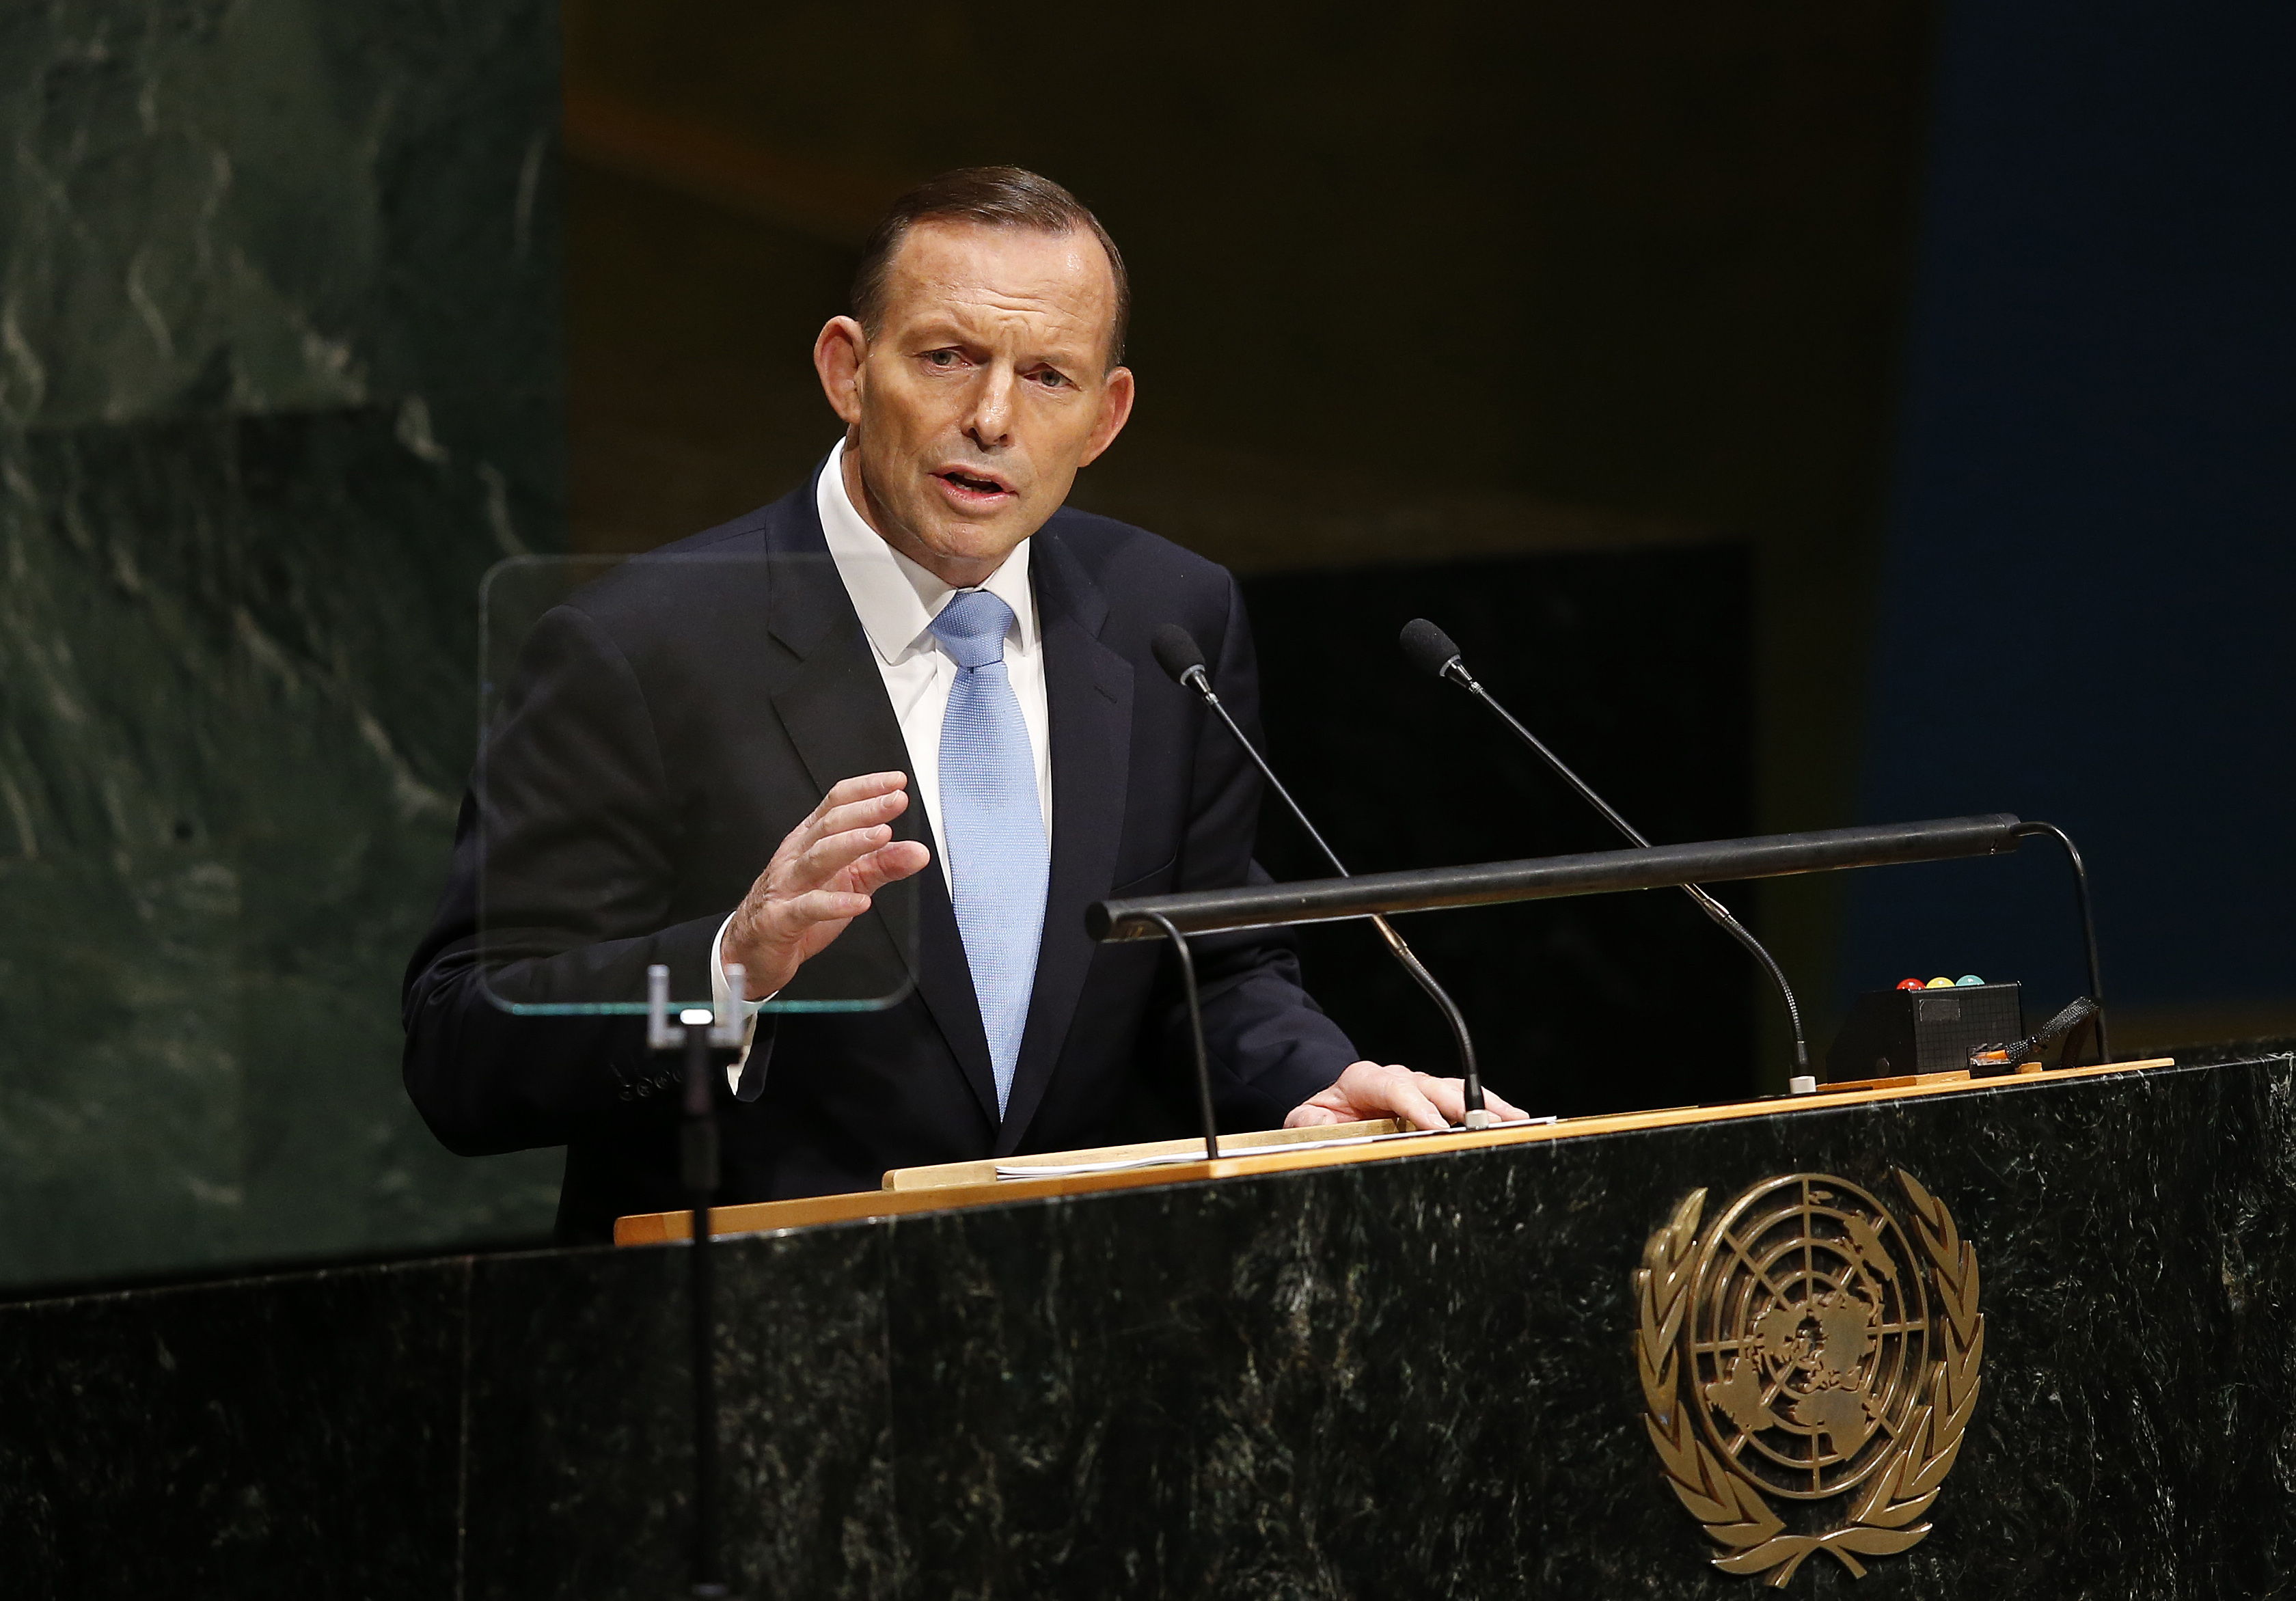 Prime Minister Tony Abbott of Australia addresses the 69th session of the United Nations General Assembly at U.N. headquarters, Thursday, Sept. 25, 2014.